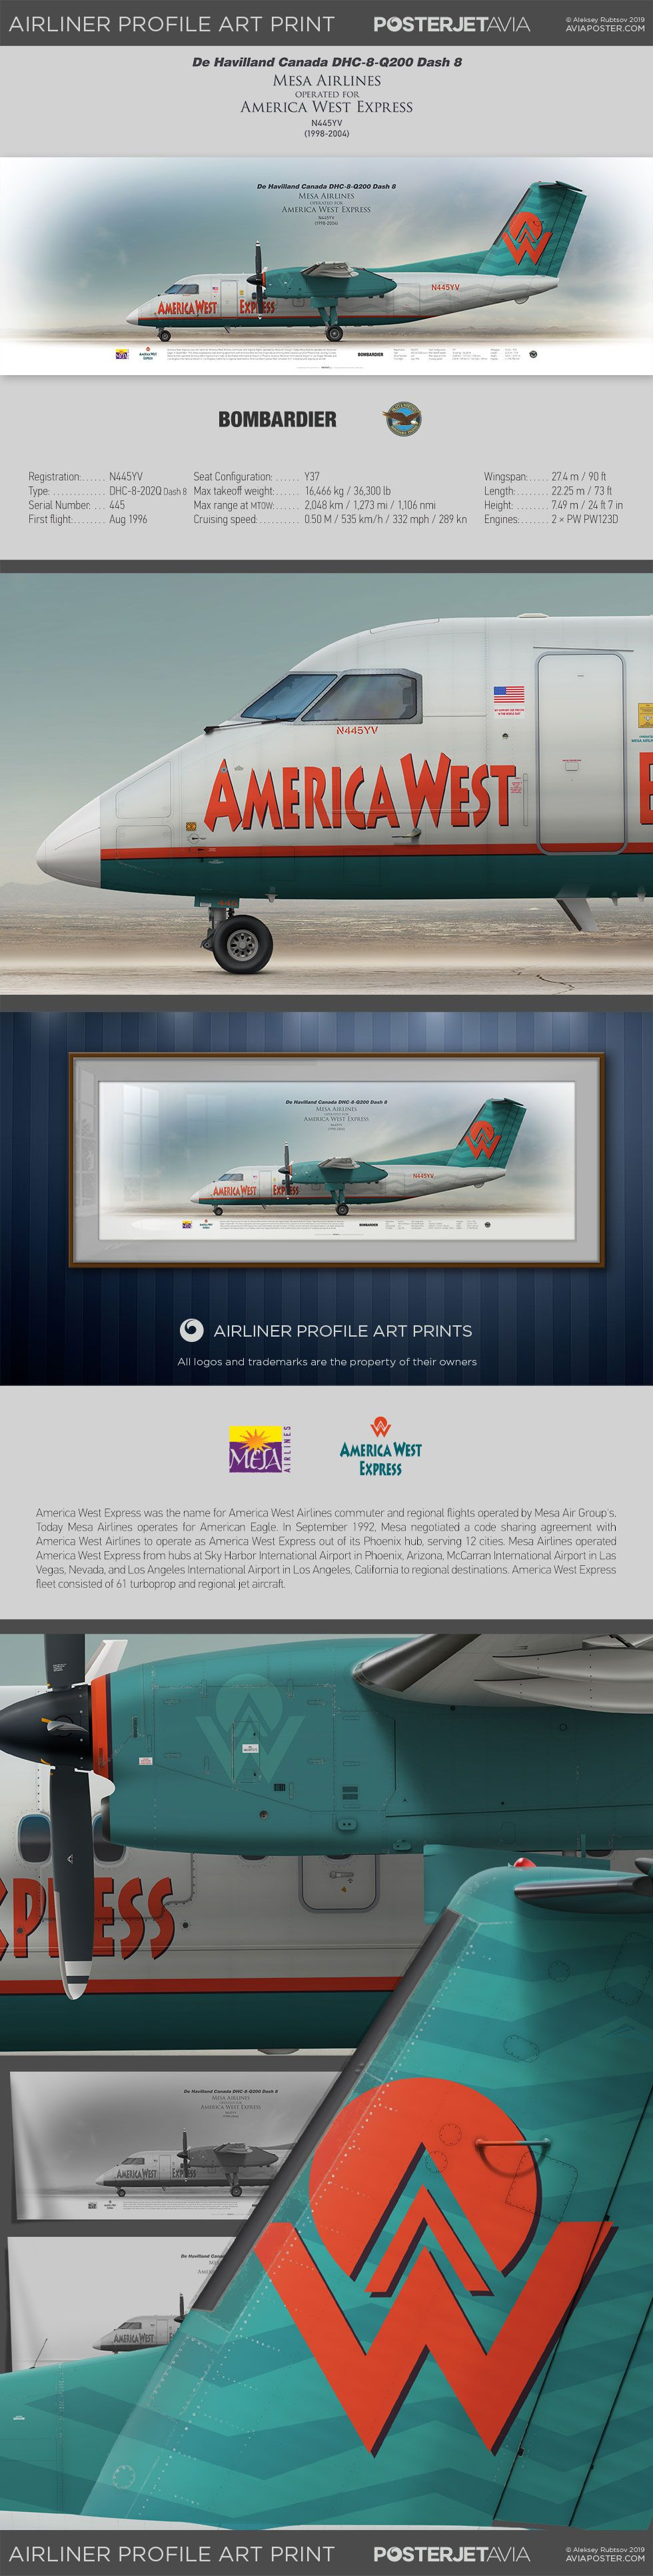 De Havilland Canada DHC-8-Q200 Dash 8 Mesa Airlines operated for America West Express (1998-2004) | Airliner Profile Art Prints | #posterjetavia #aviation #aviationlovers #airplanes #planes #avgeek #airlineposter #pilotlife #pilots #instaplane #worldofaviation #instaaviation #profileprints #aviationhistory #dash8 #dhc8